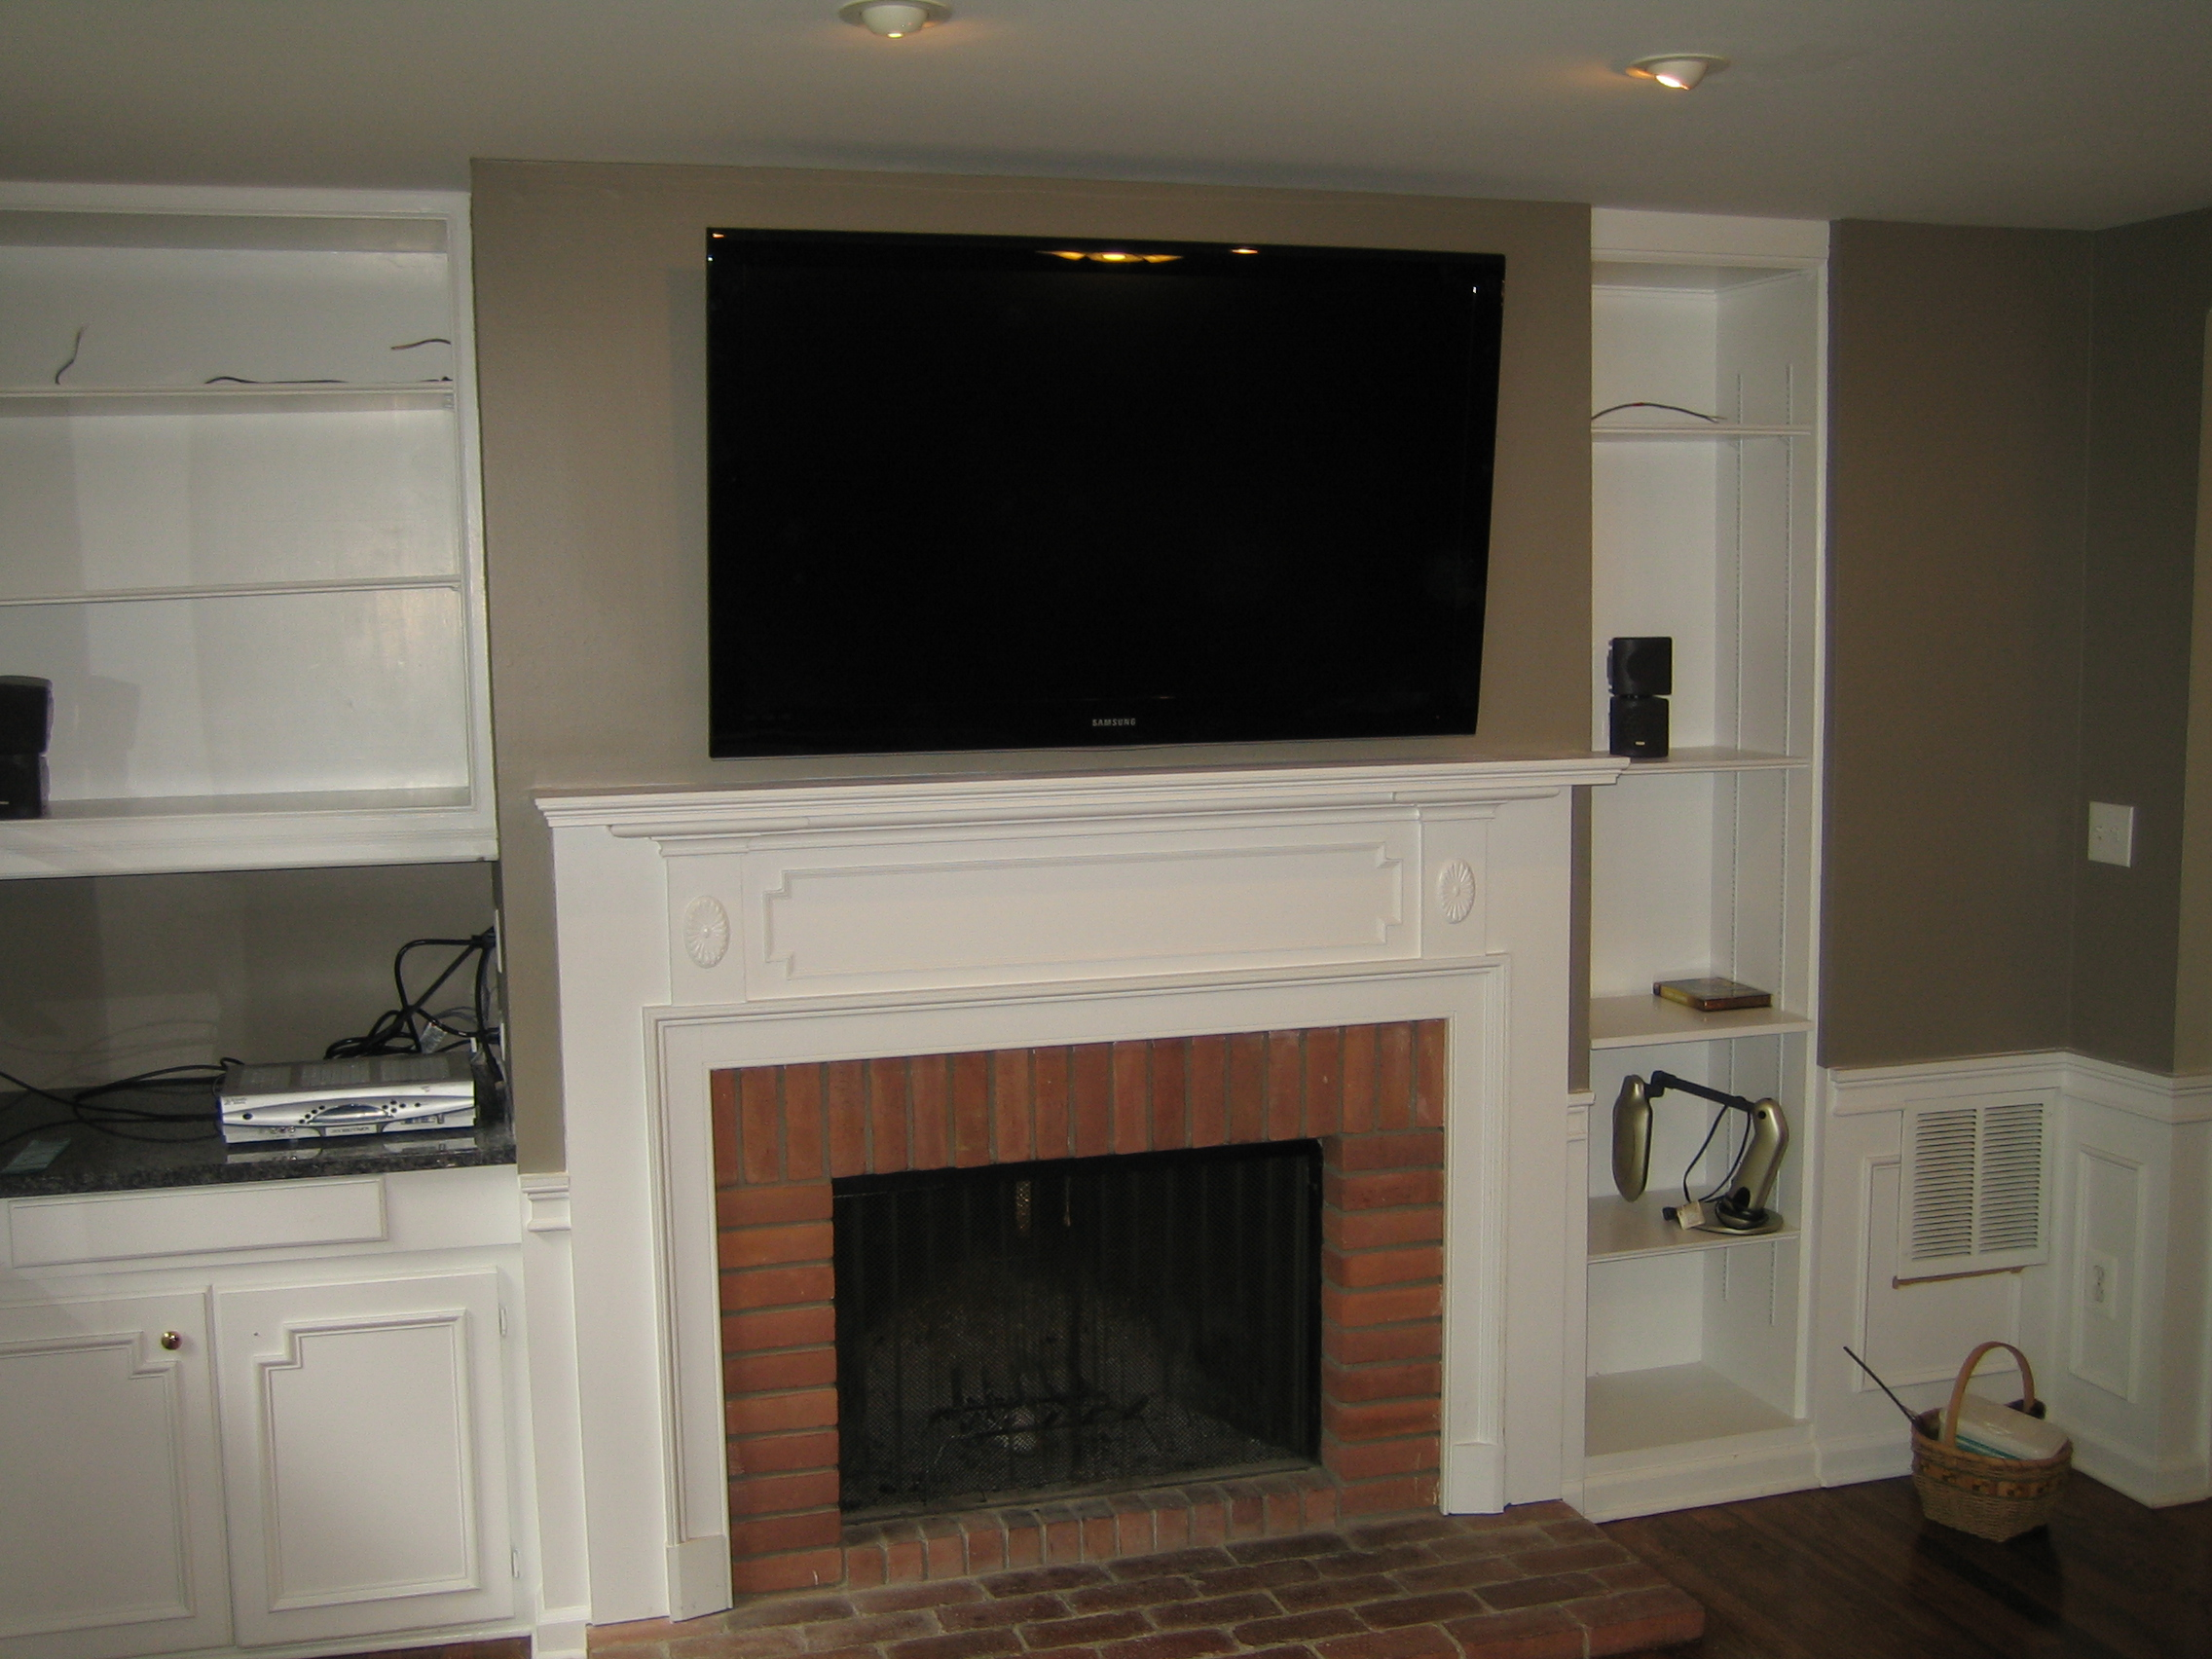 woodbridge ct tv mounting home theater installation